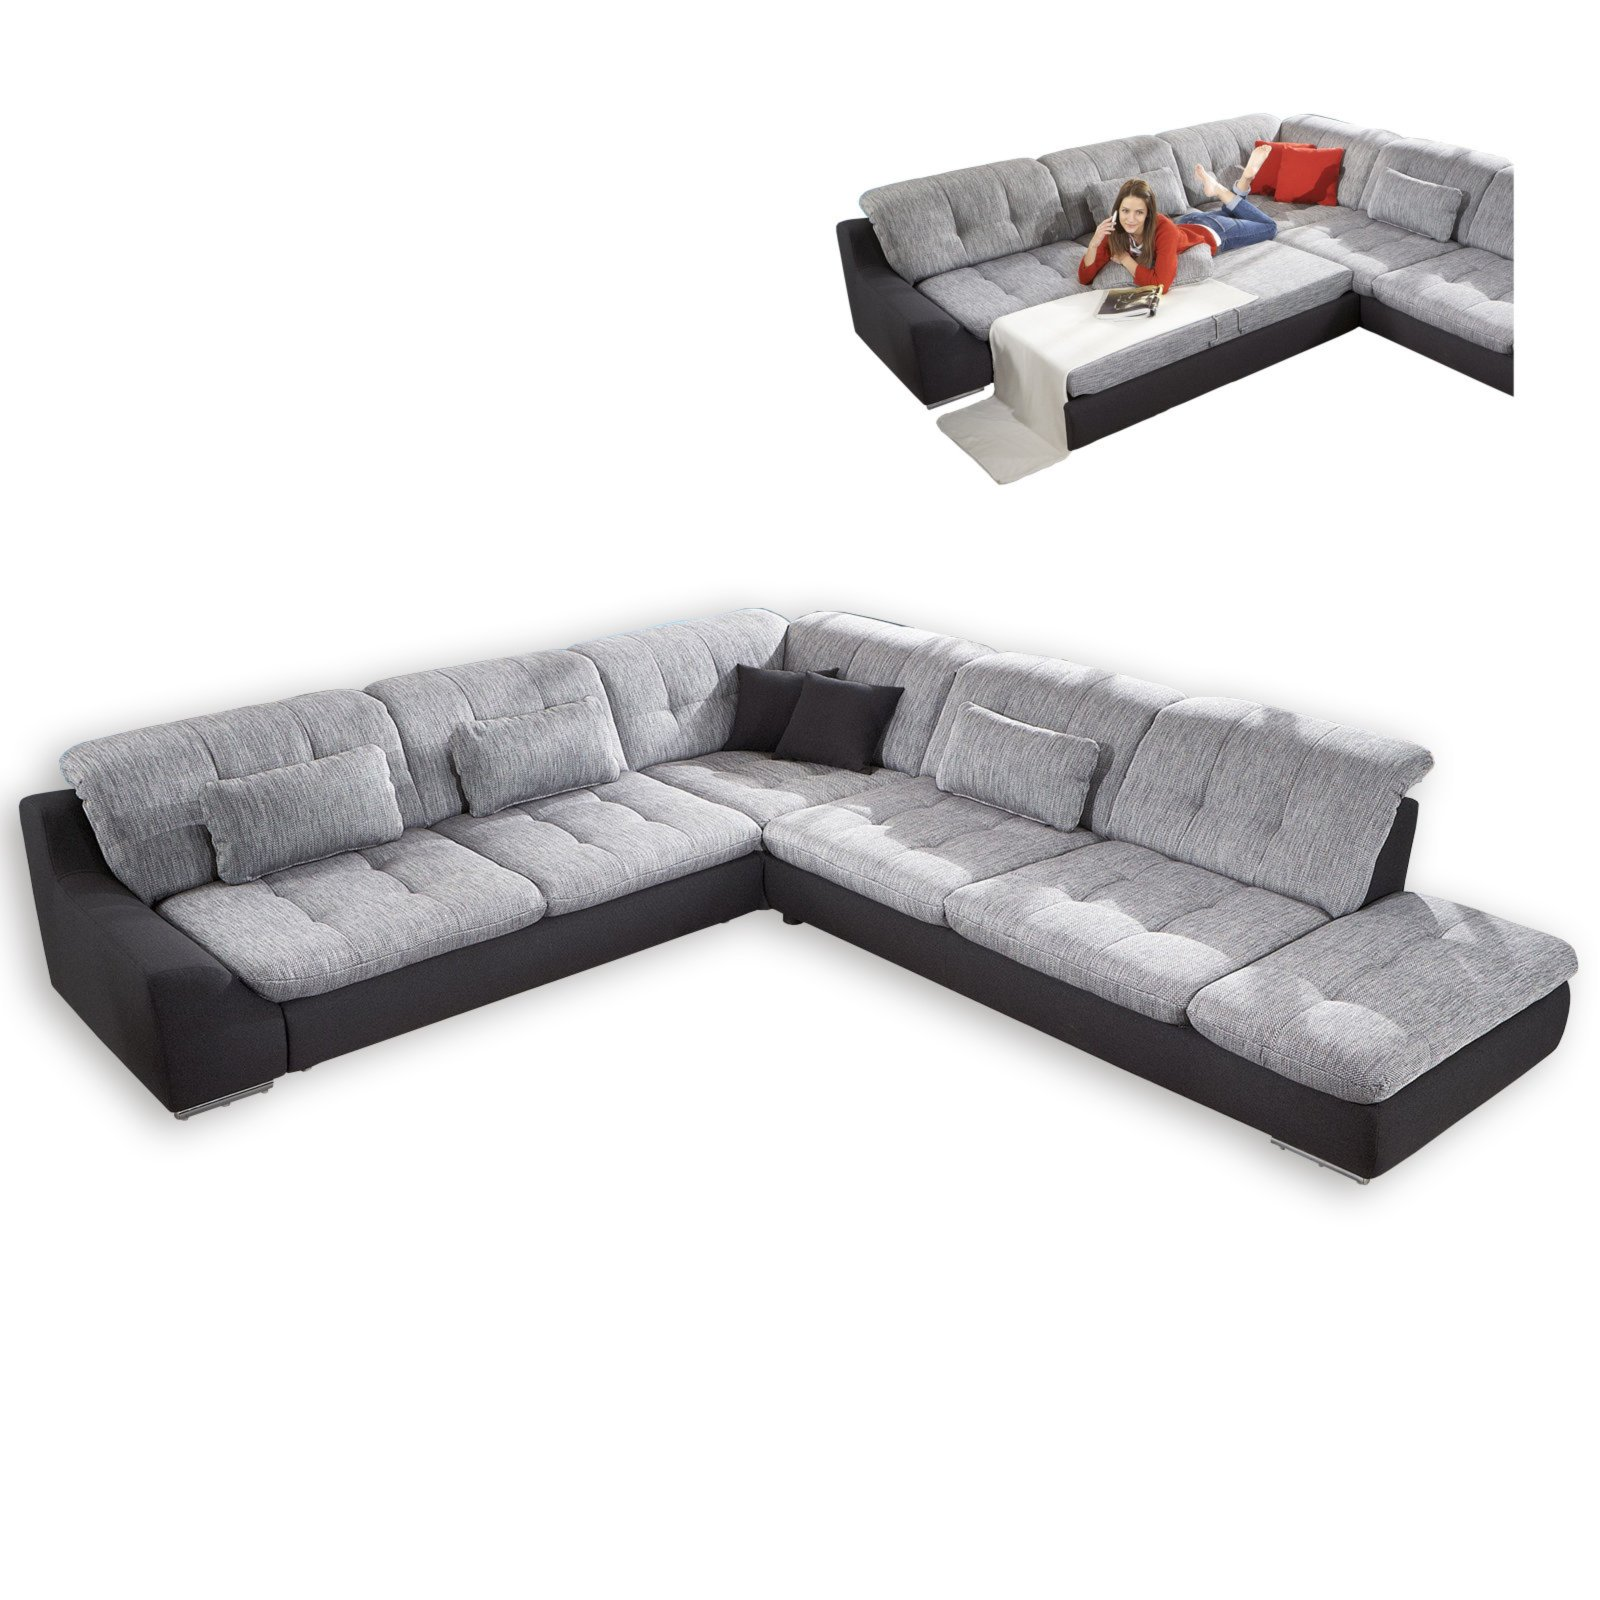 ecksofa silber graphit mit funktionen anstellhocker rechts ecksofas l form sofas. Black Bedroom Furniture Sets. Home Design Ideas